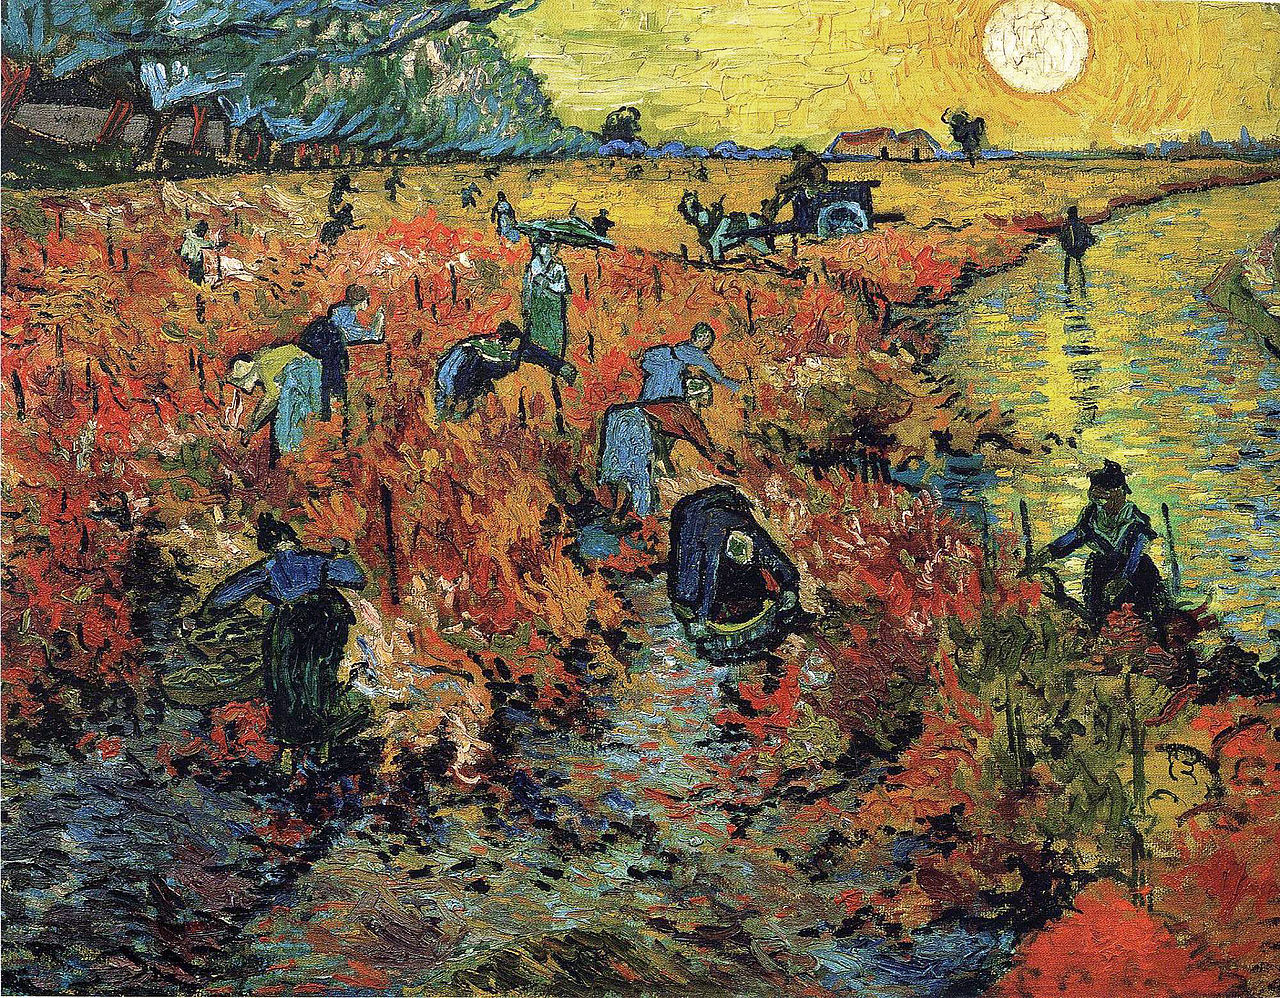 Famous Artist van Gogh's painting of people working in a field